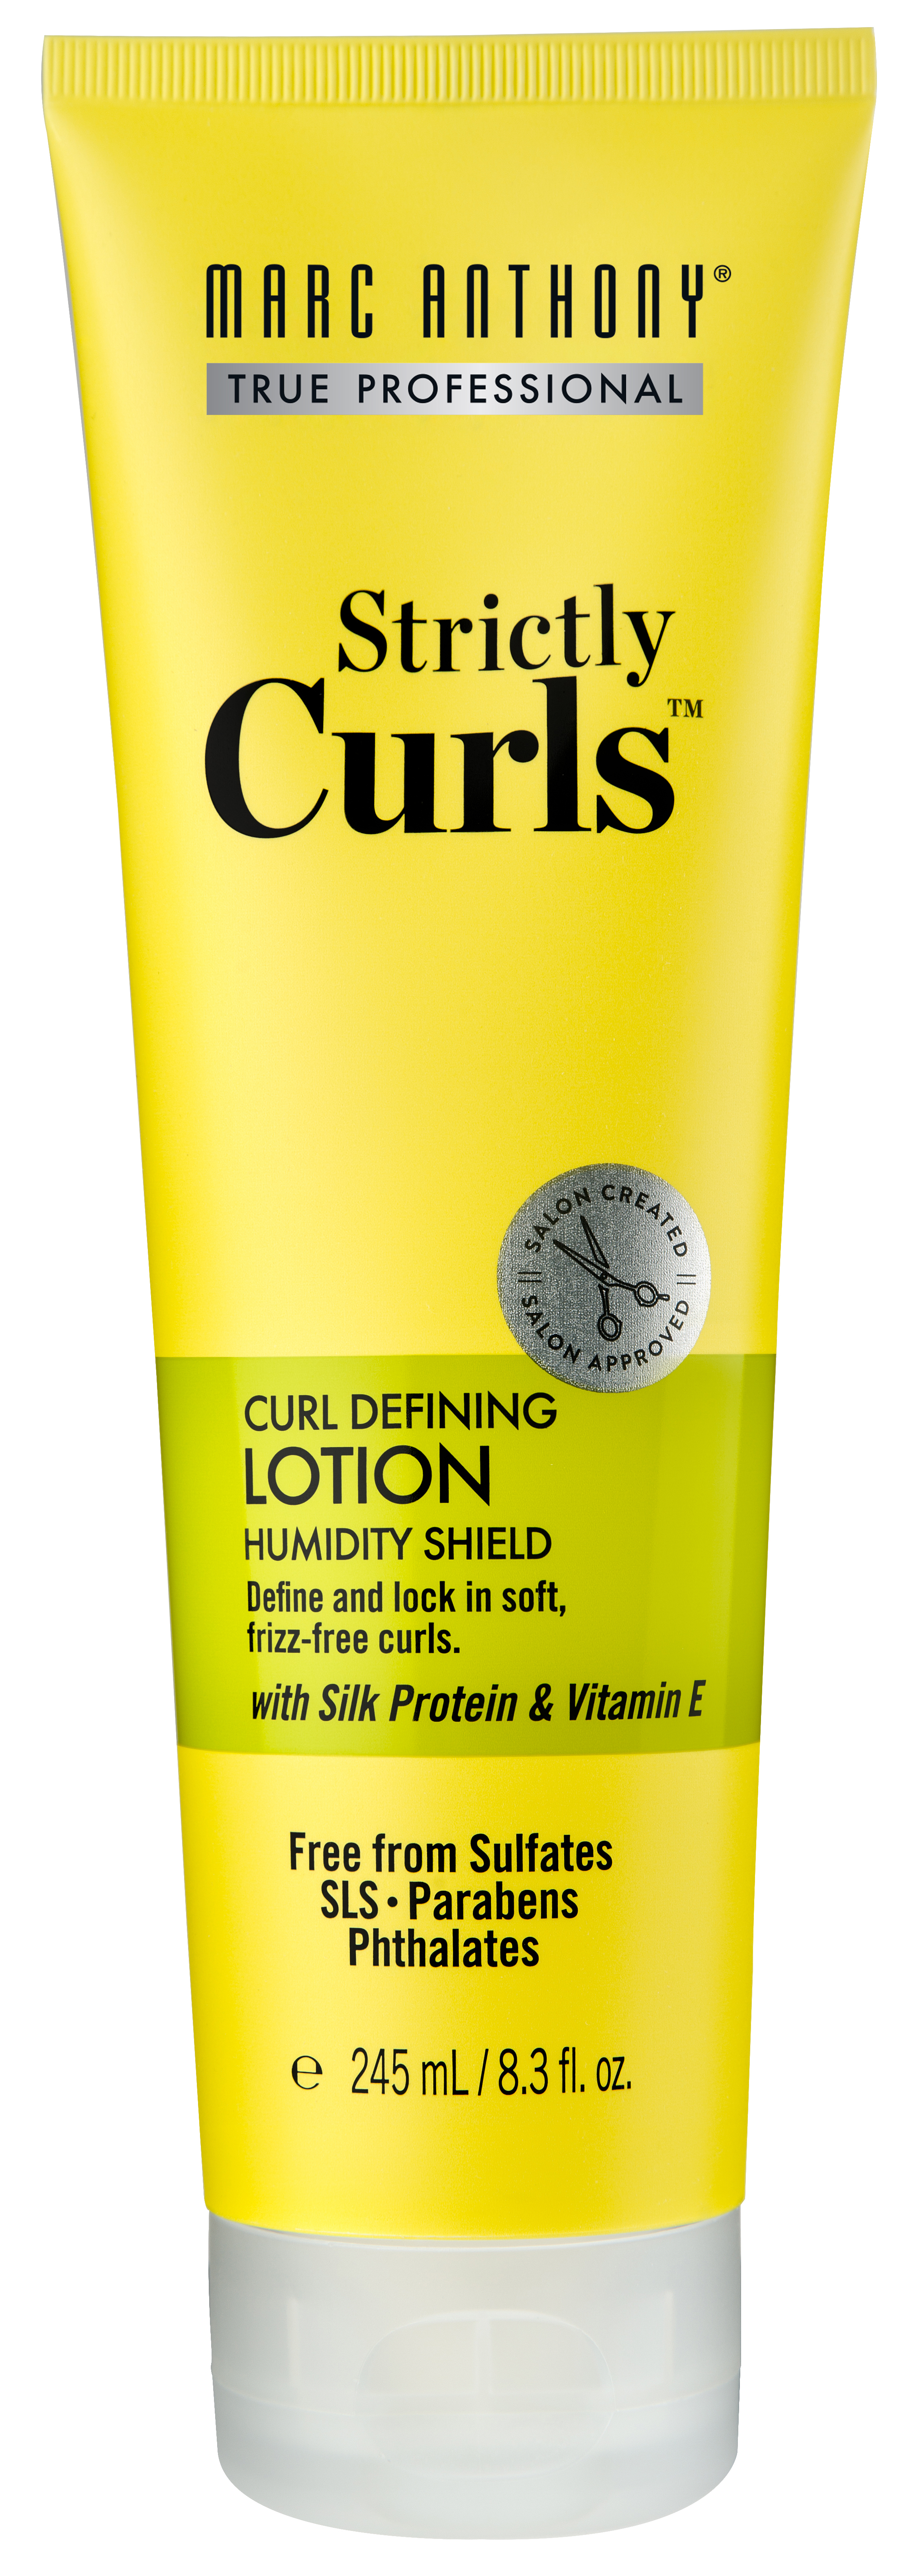 Strictly Curls Defining Lotion 245ml